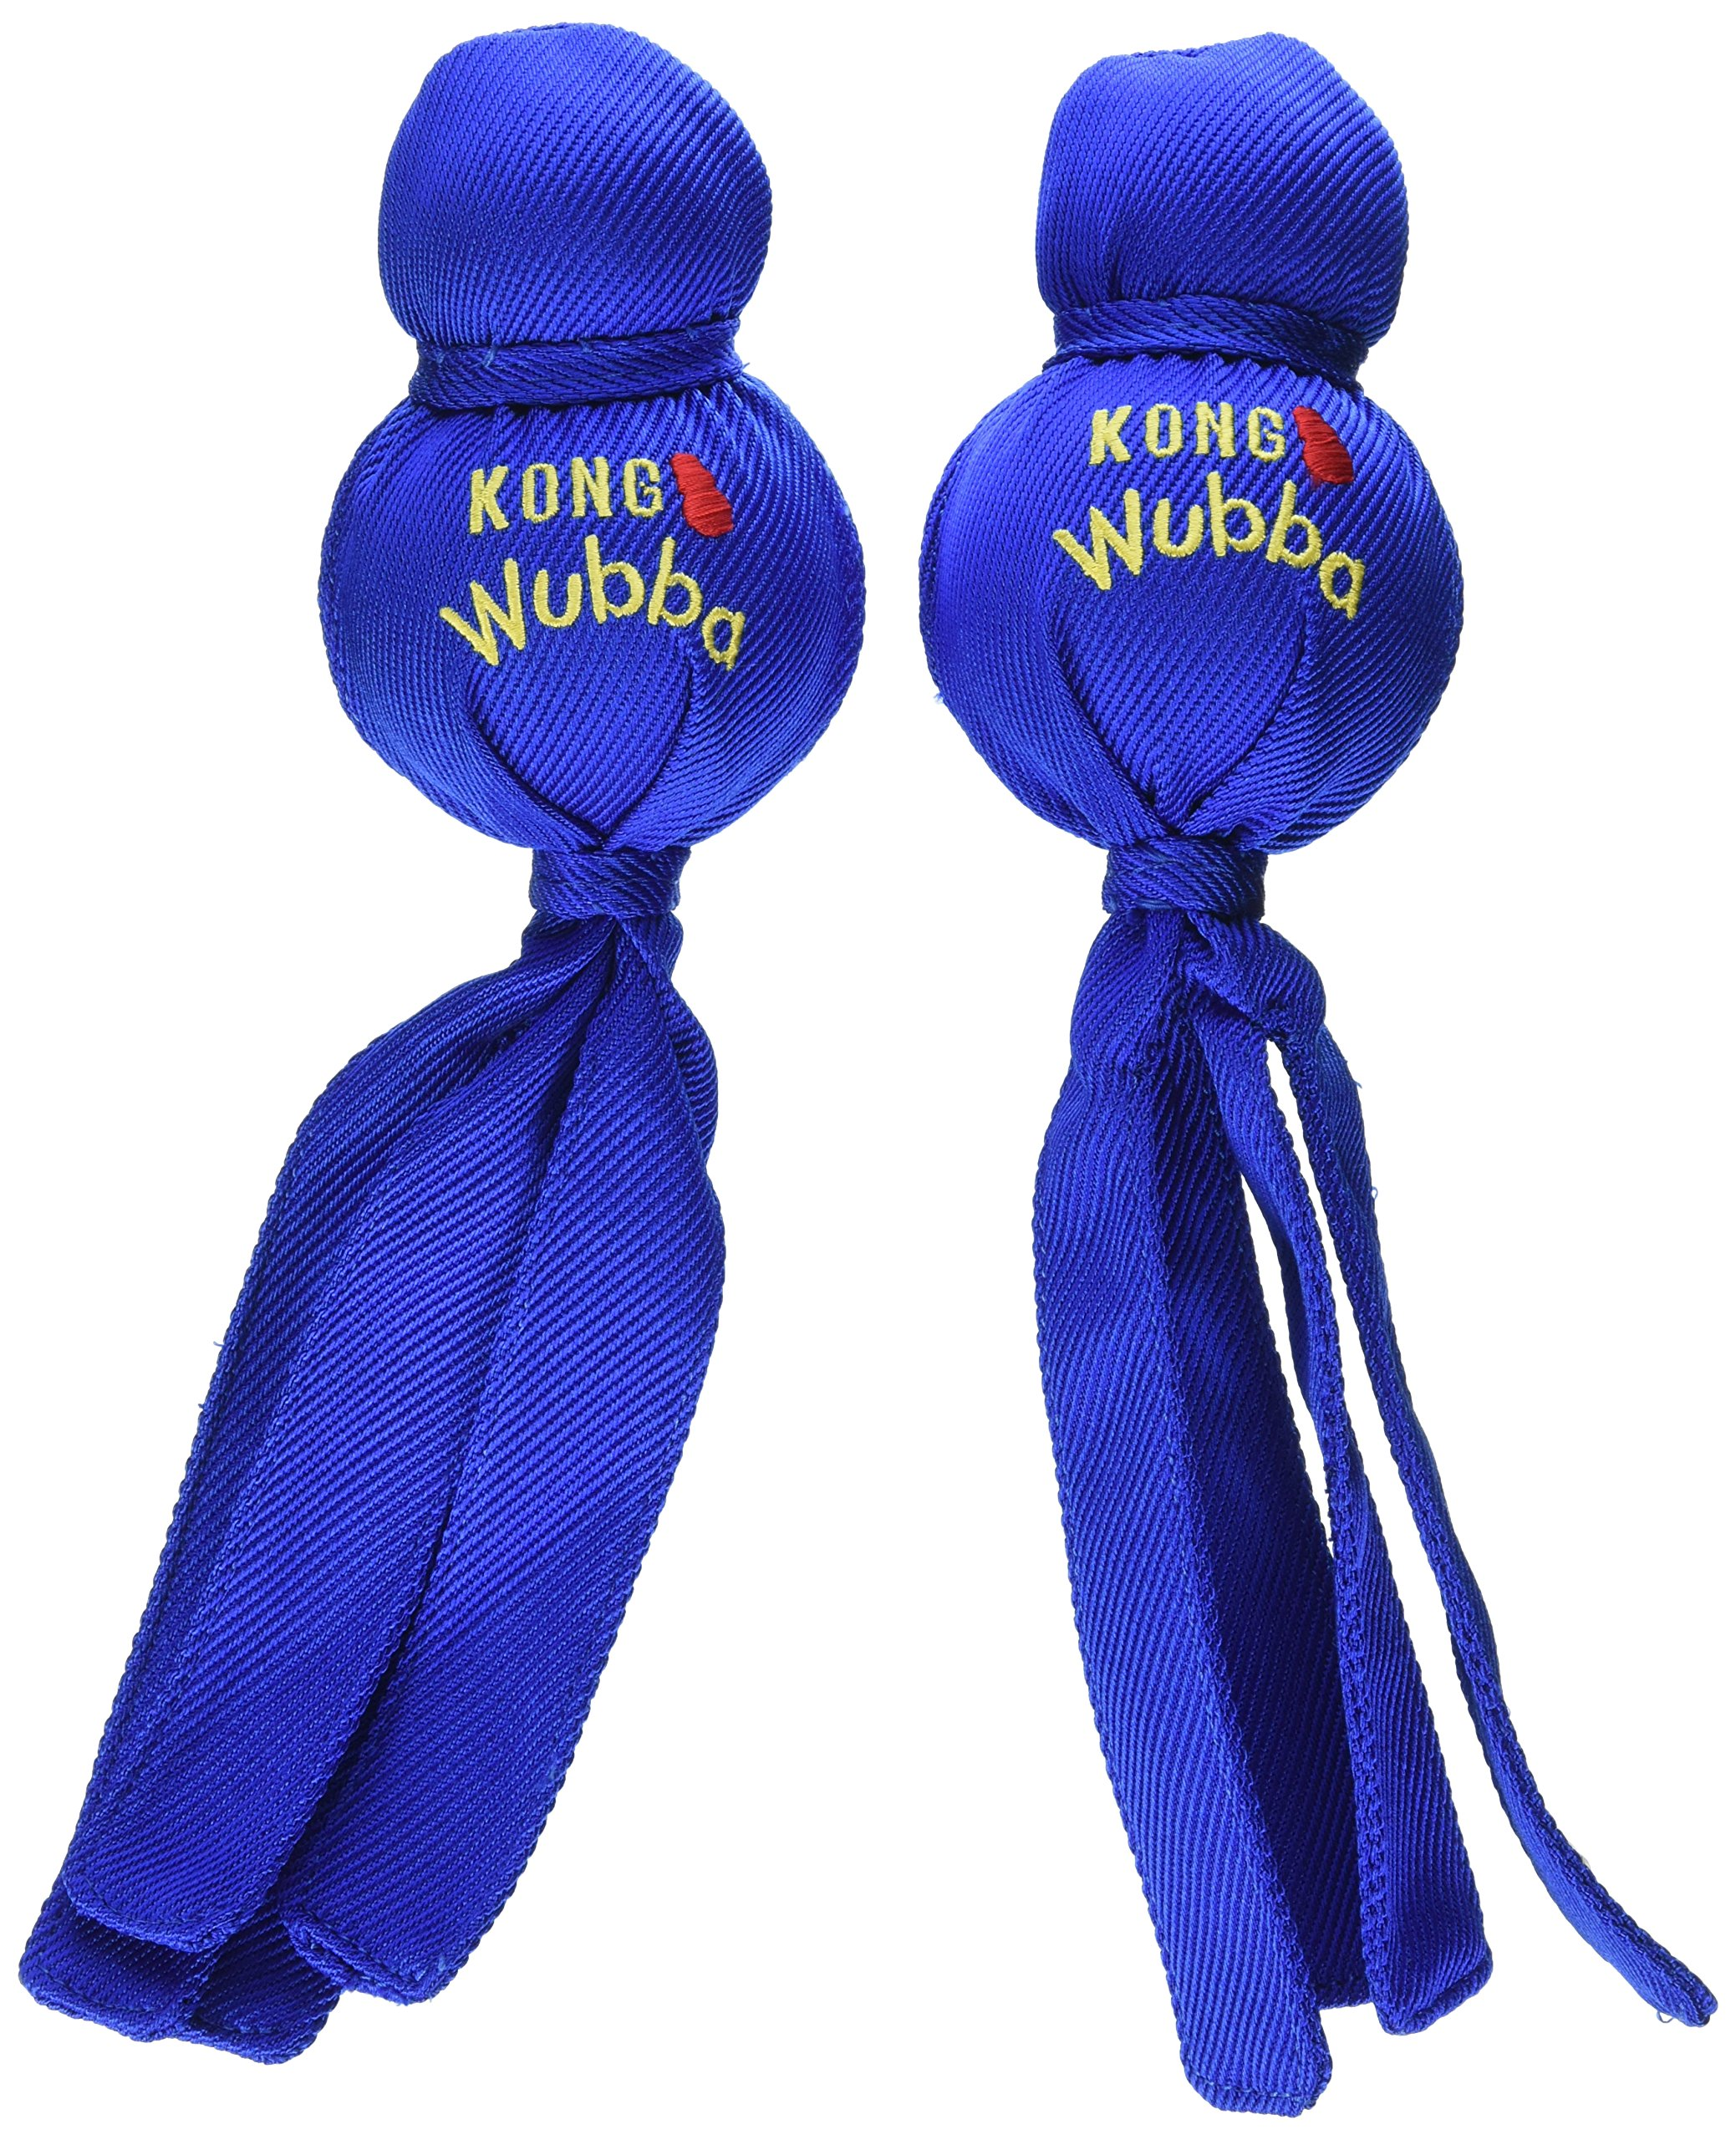 KONG-Wubba-Dog-Size-Large-Pack-of-2-Assorted